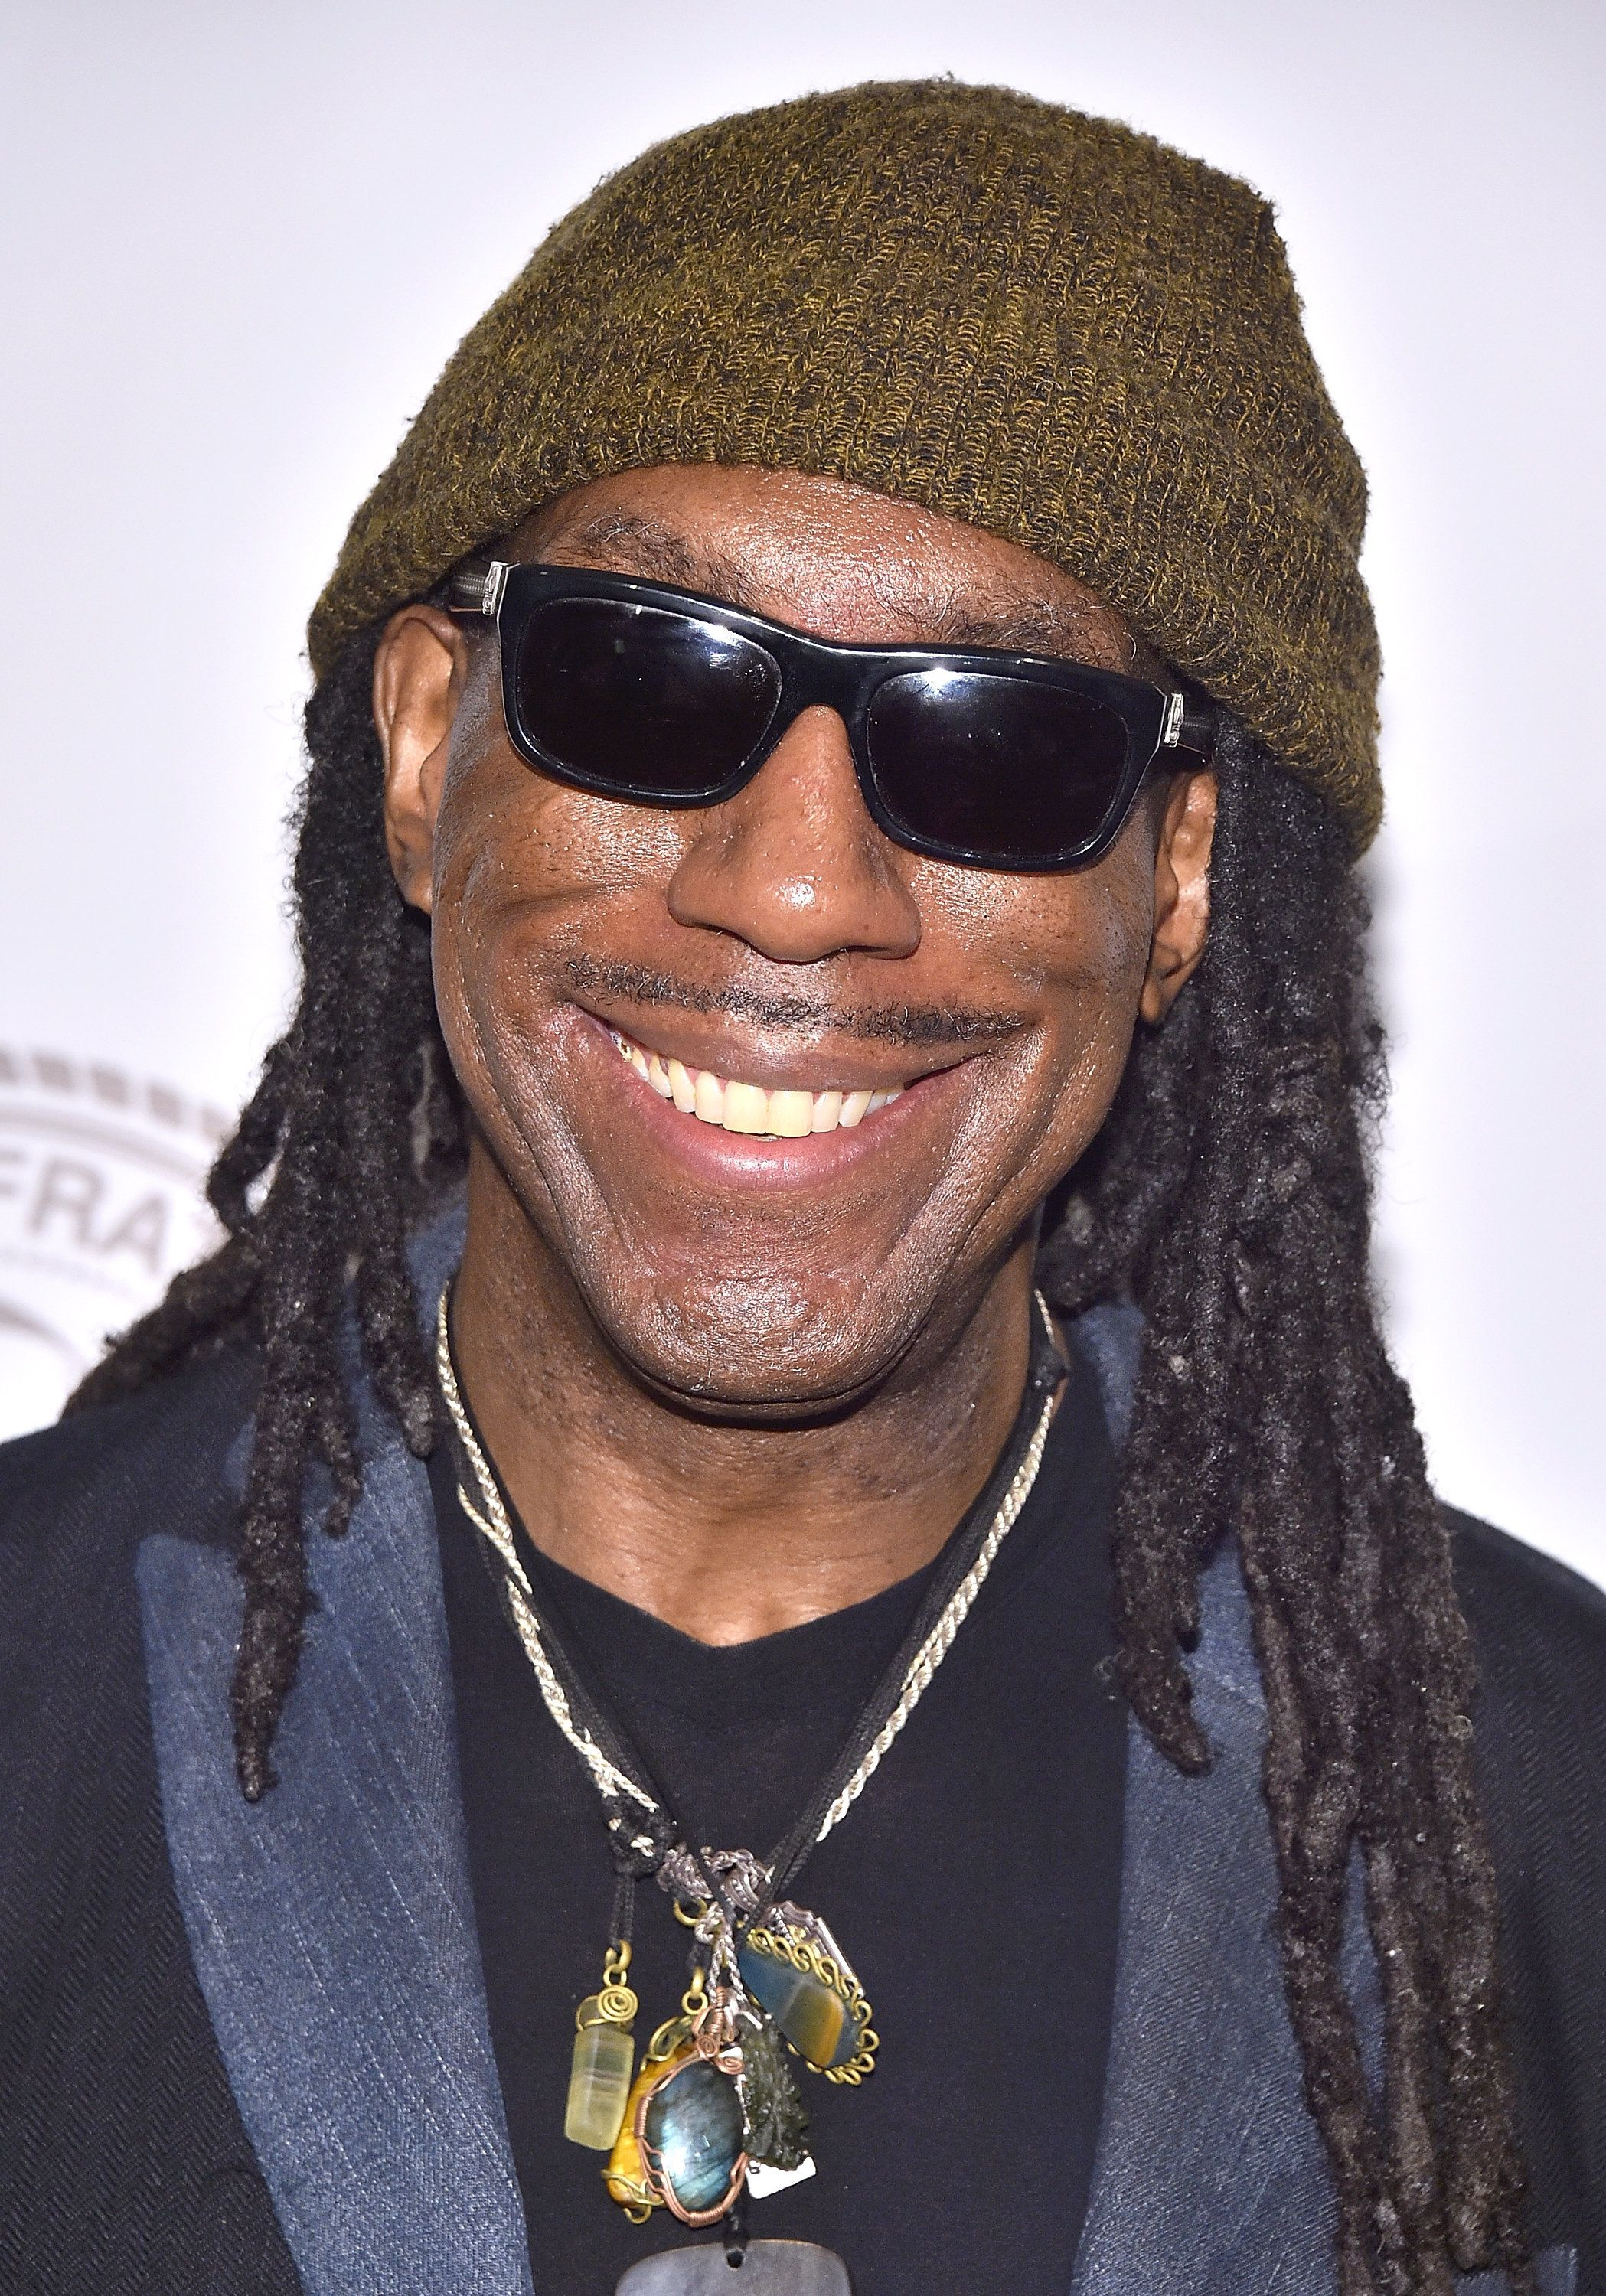 NEW YORK, NY - JUNE 20:  Boyd Tinsley of the Dave Matthews Band attends as the Friars Club Honors Tony Bennett With The Entertainment Icon Award - Arrivals at New York Sheraton Hotel & Tower on June 20, 2016 in New York City.  (Photo by Dimitrios Kambouris/Getty Images)